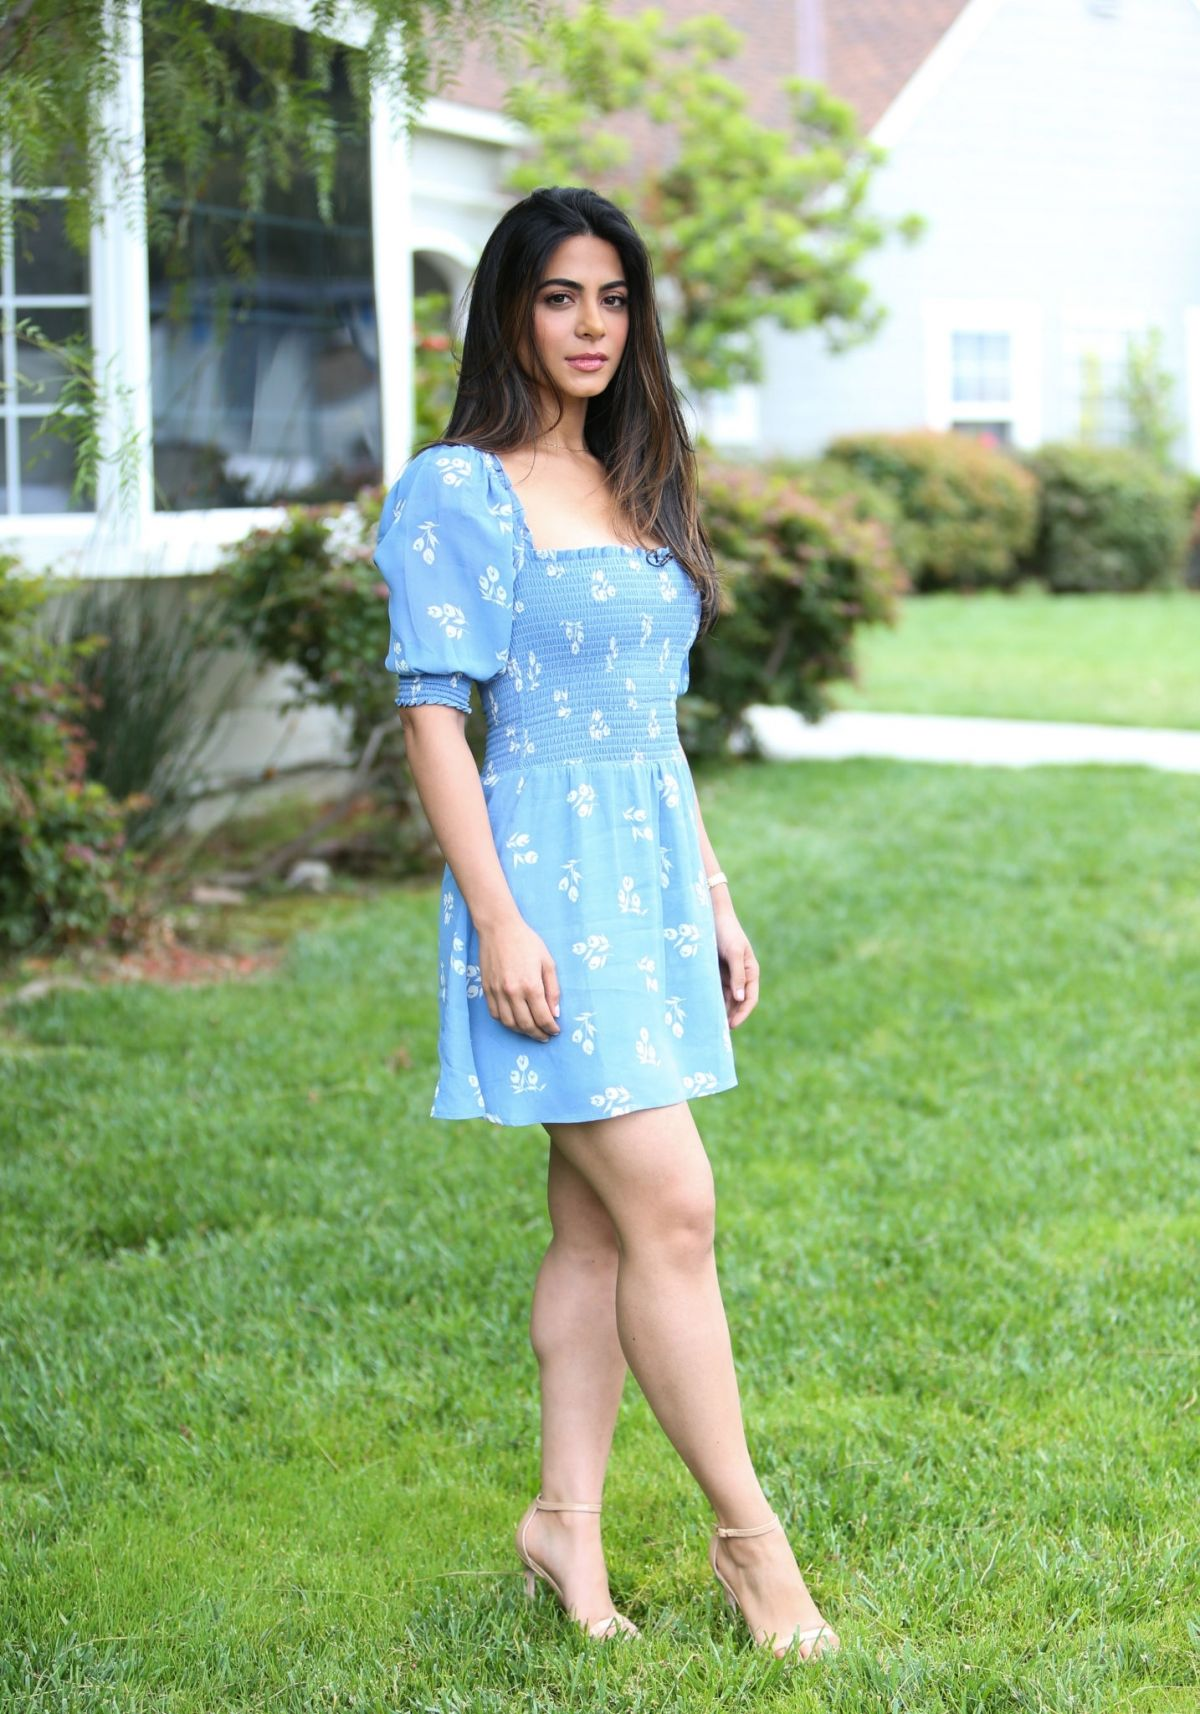 EMERAUDE TOUBIA At Home & Family In Universal City 05/23